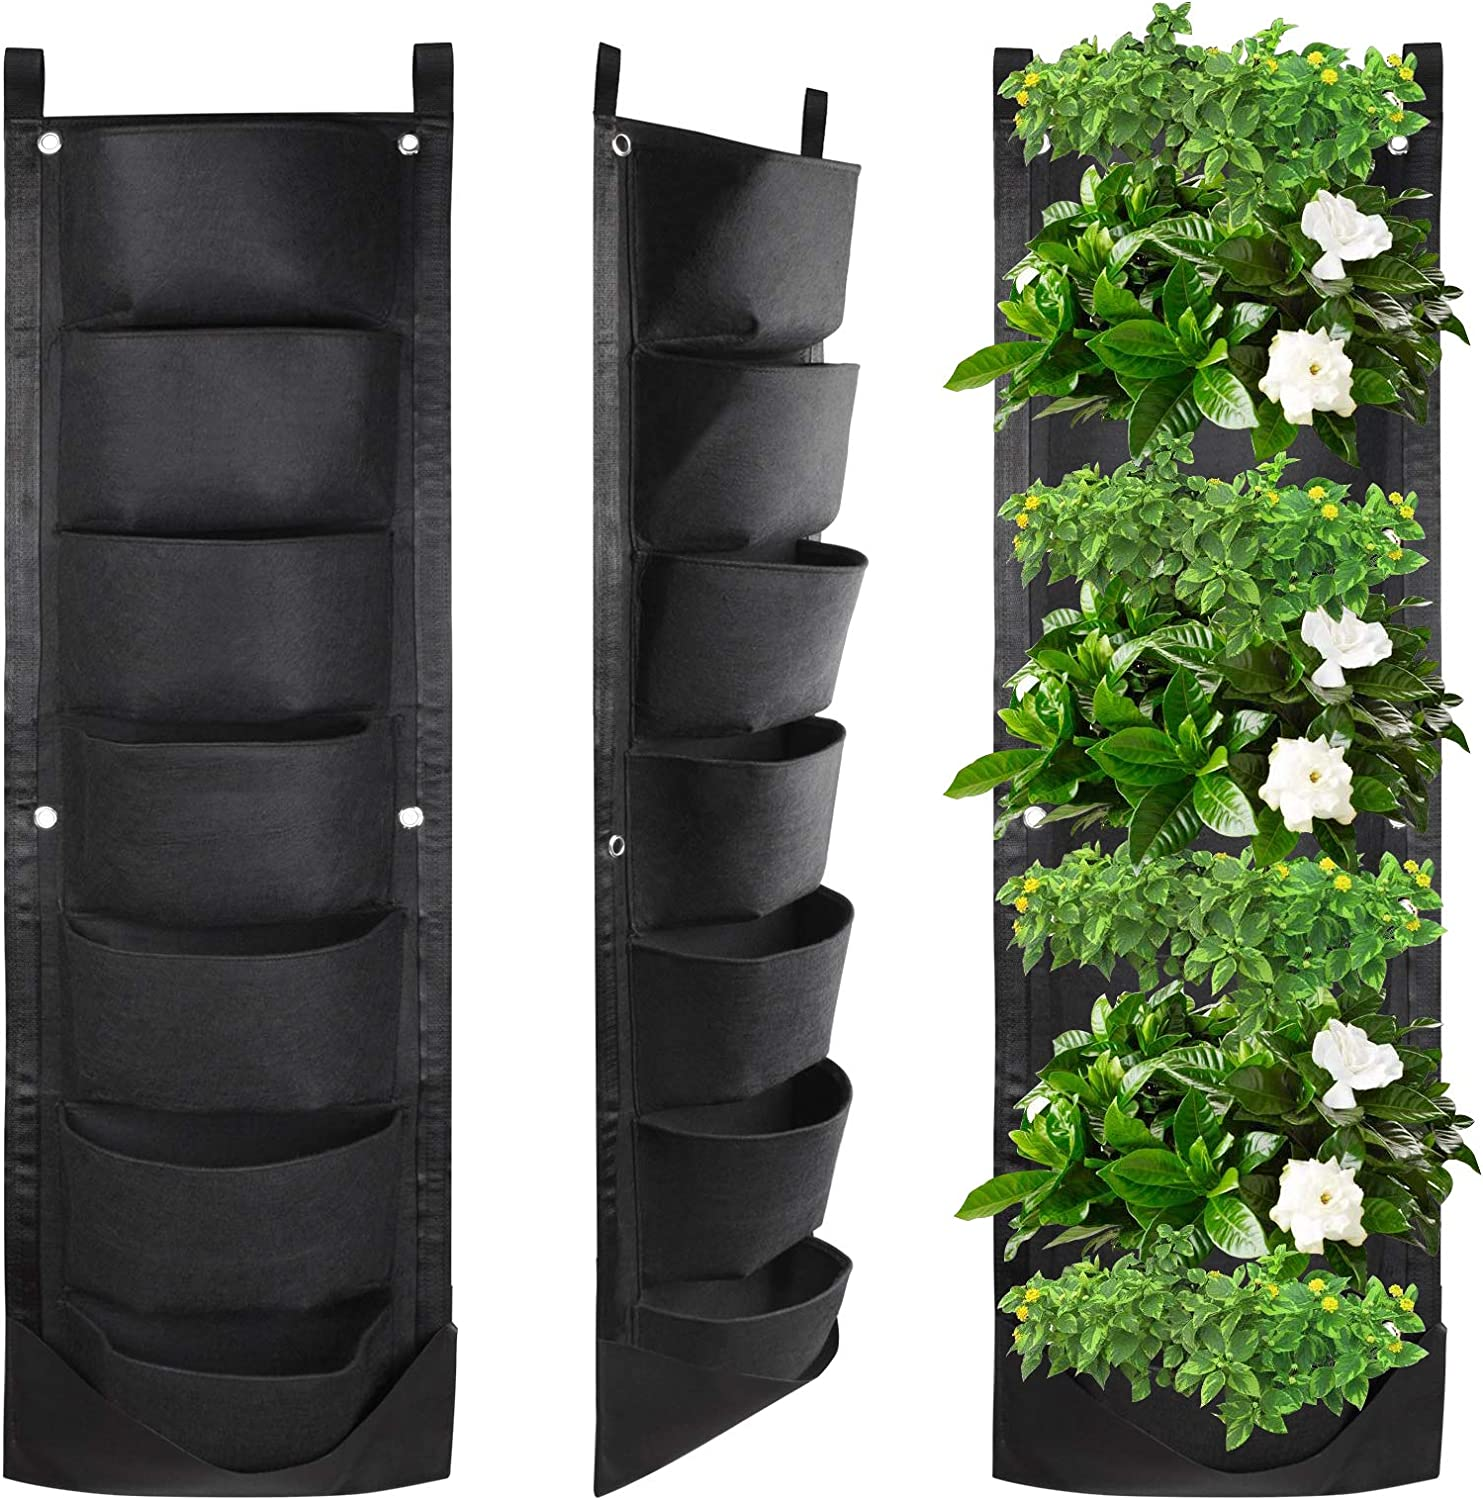 KORAM 7 Pockets Wall Hanging Planter, Upgraded Vertical Garden Planter Deeper and Bigger for Indoor & Outdoor Planting Home Balcony Yard Decoration Better Waterproof